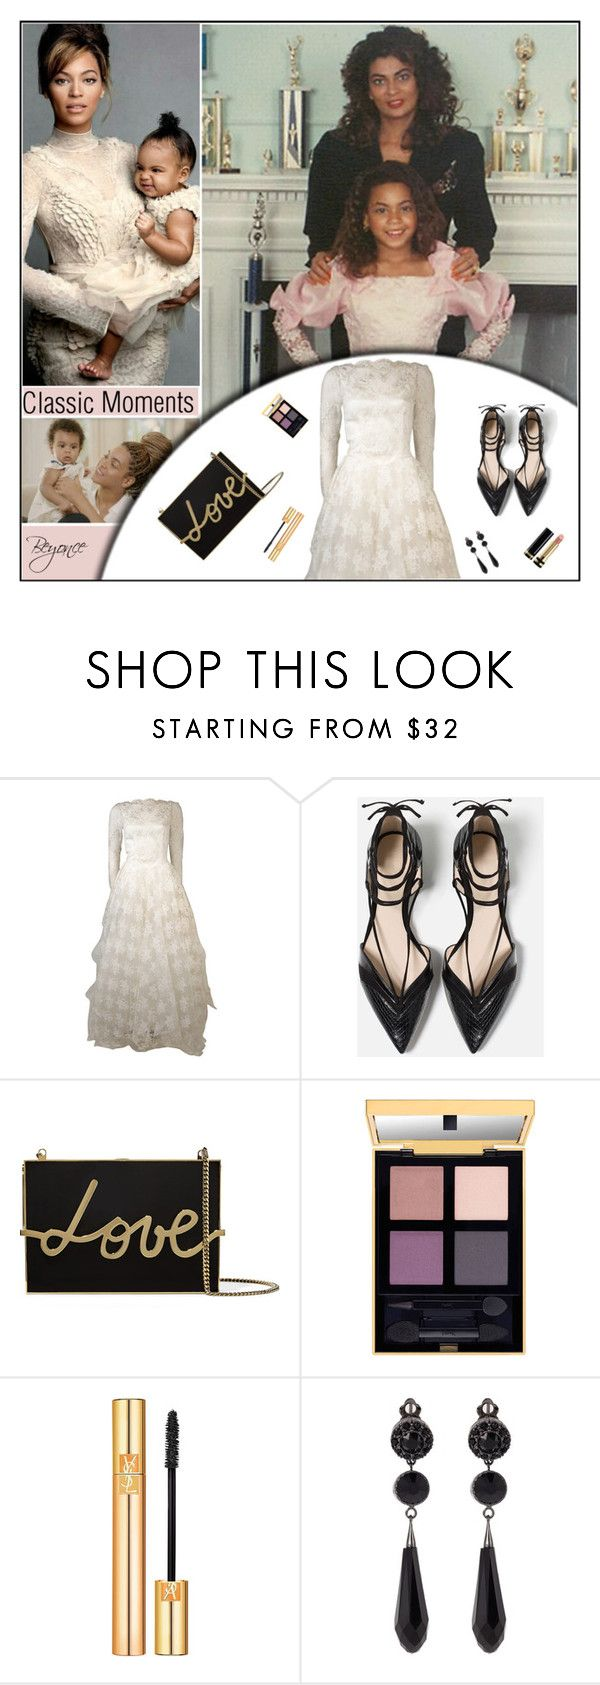 """Classic Moments/ Beyonce..."" by melindairenes ❤ liked on Polyvore featuring Zara, Lanvin, Yves Saint Laurent, Givenchy, Gucci, USA, classicmoments, thanksamillion, thanksmylovelies and Sorryforthelatereply"